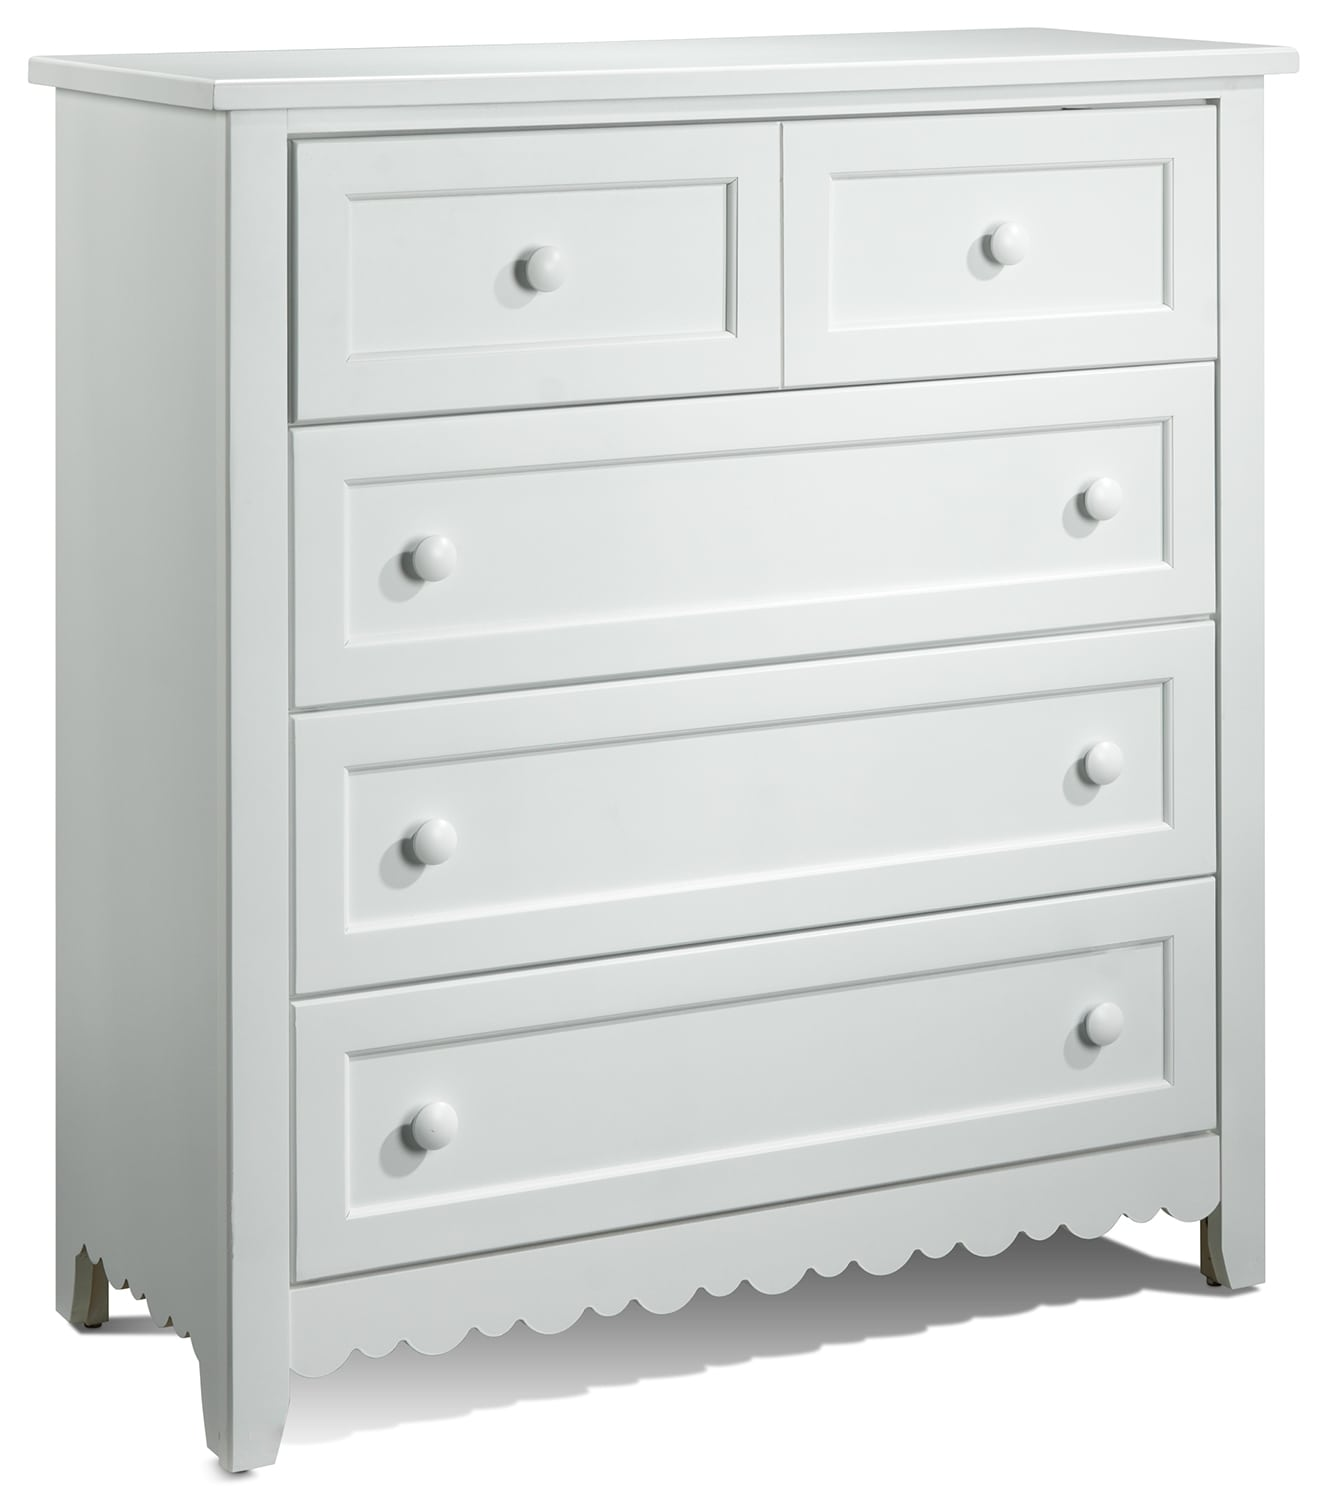 Sweetdreams Commode 5 tiroirs - blanc